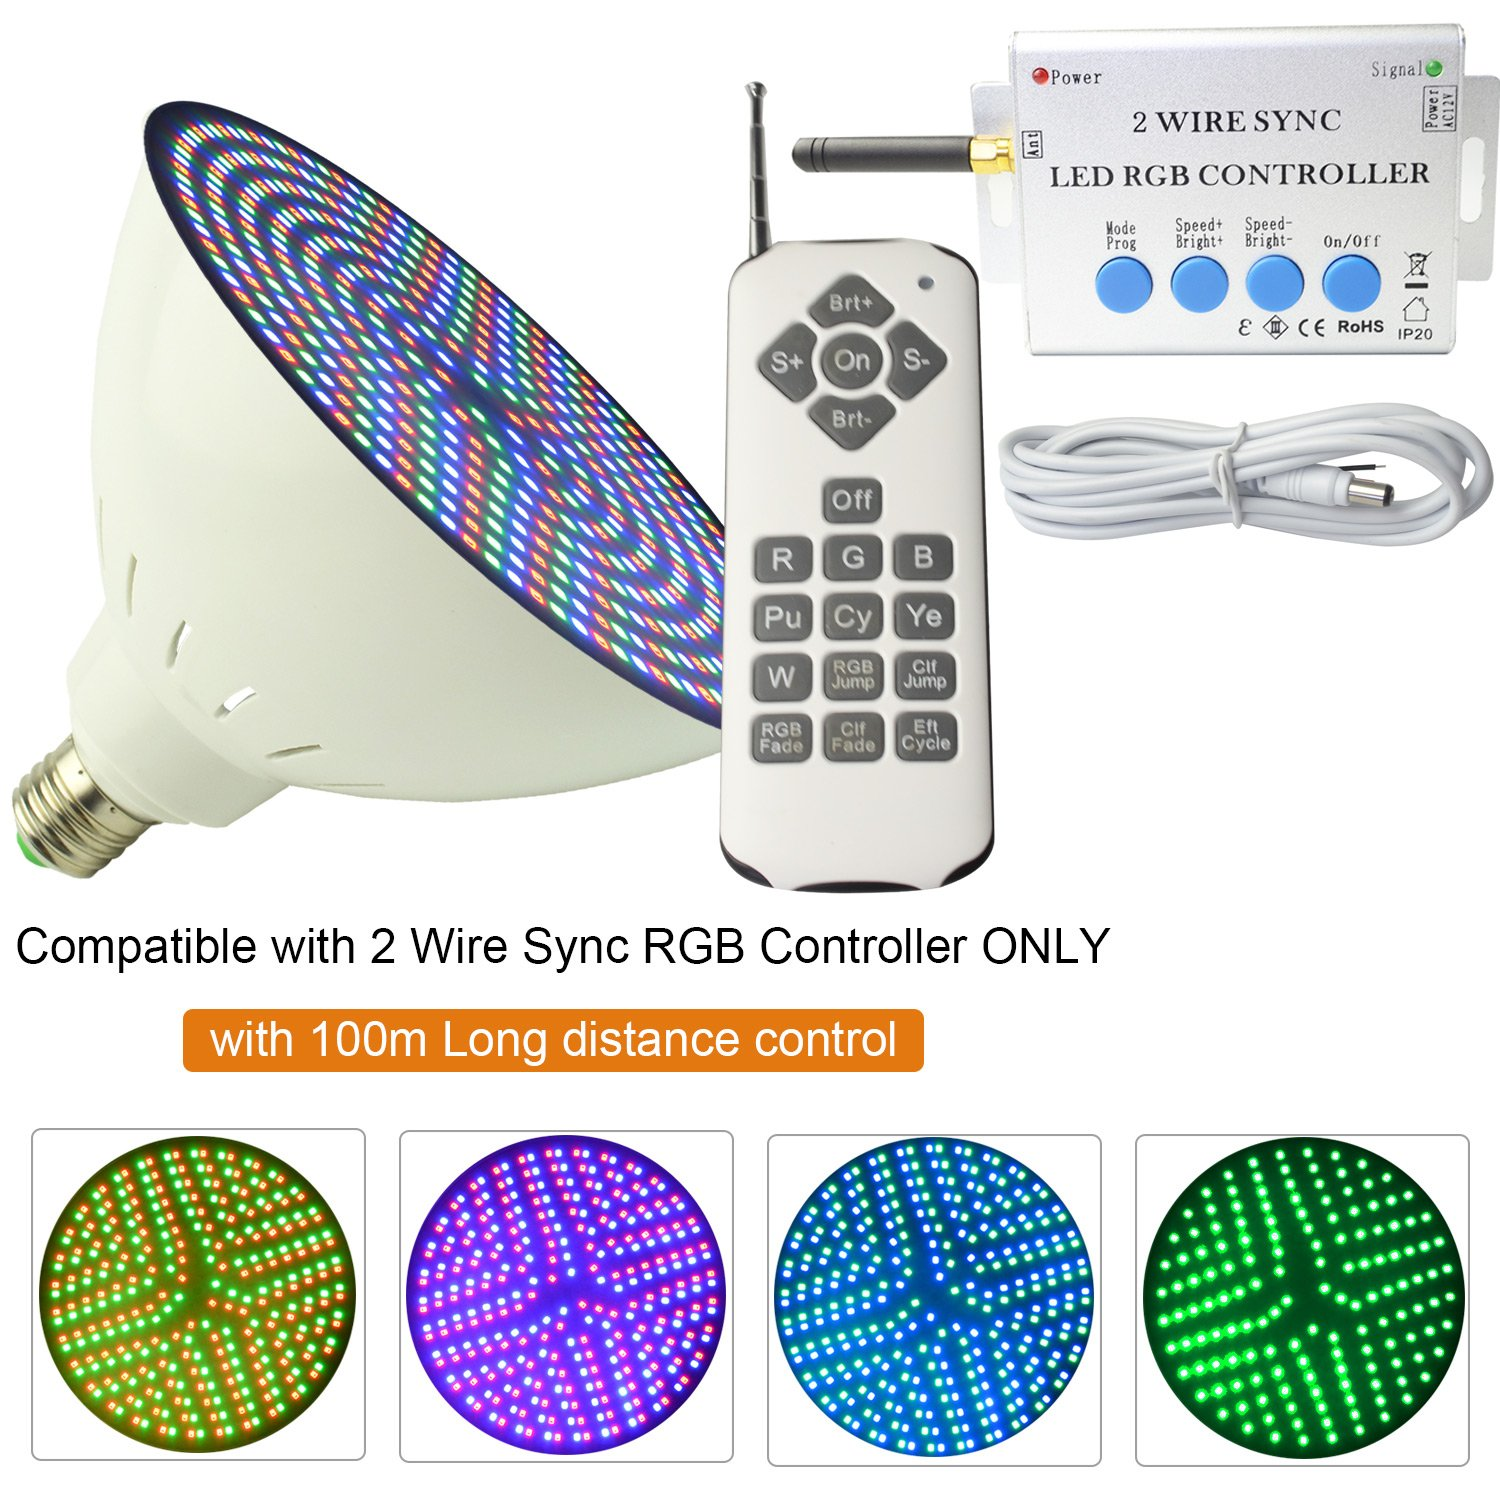 Aliyeah AC12V 18W PAR56 E27 2 Wire Sync RGB LED Color Changing Swimming Pool Light, Power Line Communication with 100M Long Distance Control (1 pcs 12V 18W+1 pcs 2 Wire Sync RGB Controller)